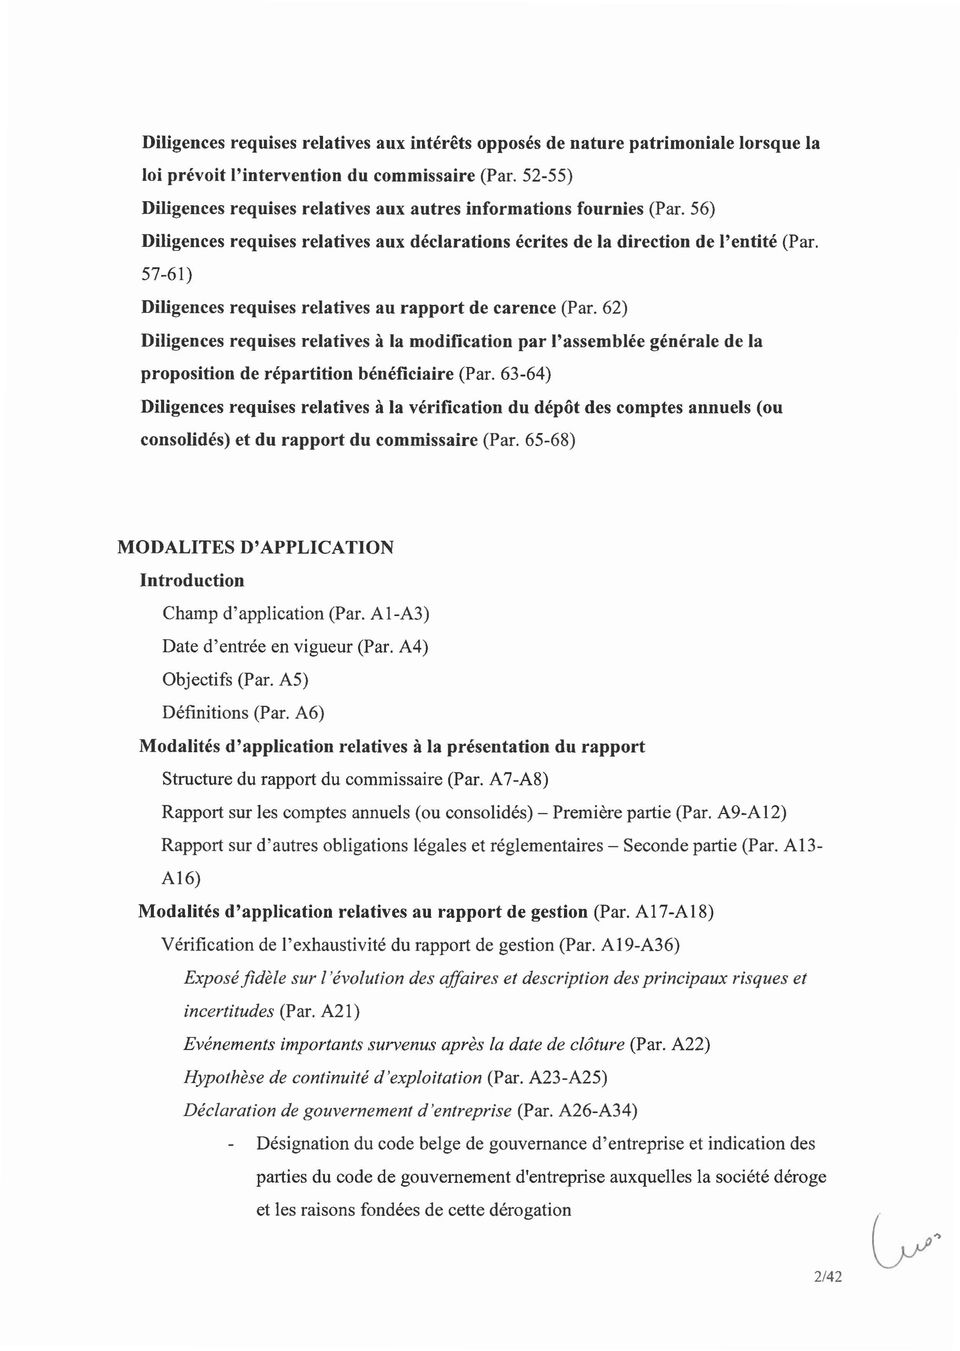 57-61) Diligences requises relatives au rapport de carence (Par. 62) Diligences requises relatives à la modification par l'assemblée générale de la proposition de répartition bénéficiaire (Par.